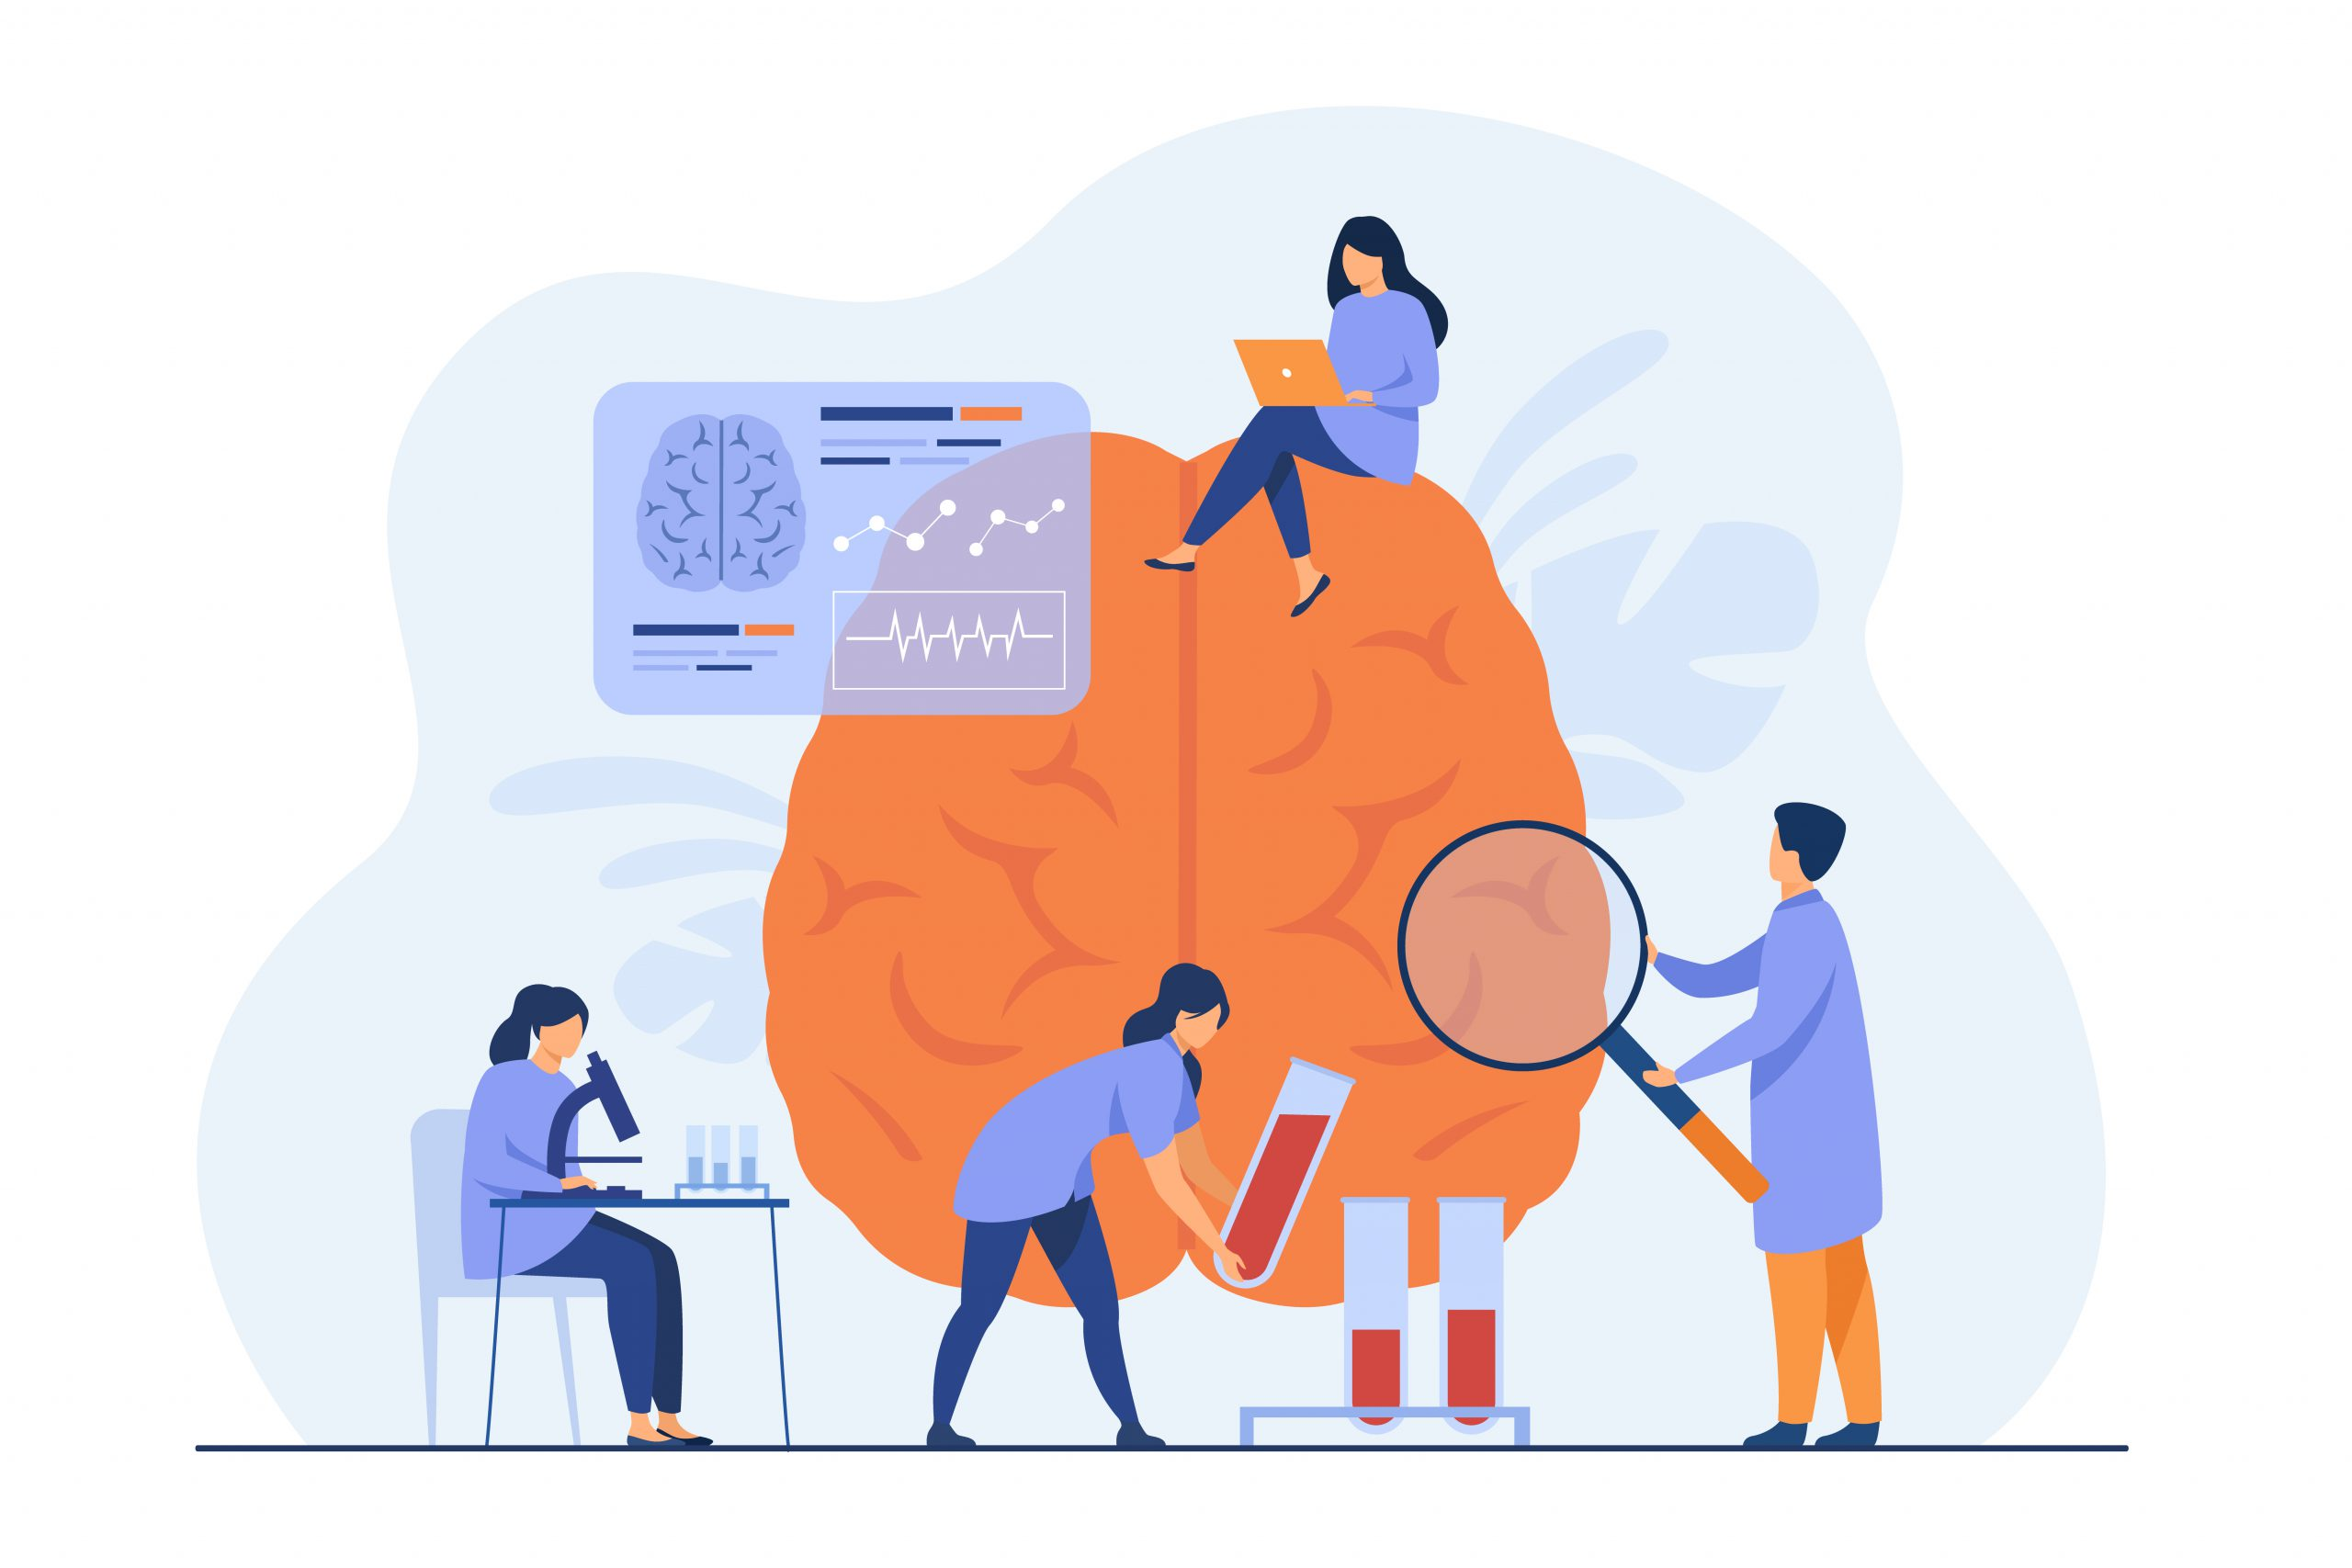 Doctors doing medical research on human brain and testing blood samples. Scientists studying brain and memory, collecting data. Vector illustration for experiment, laboratory, science concept